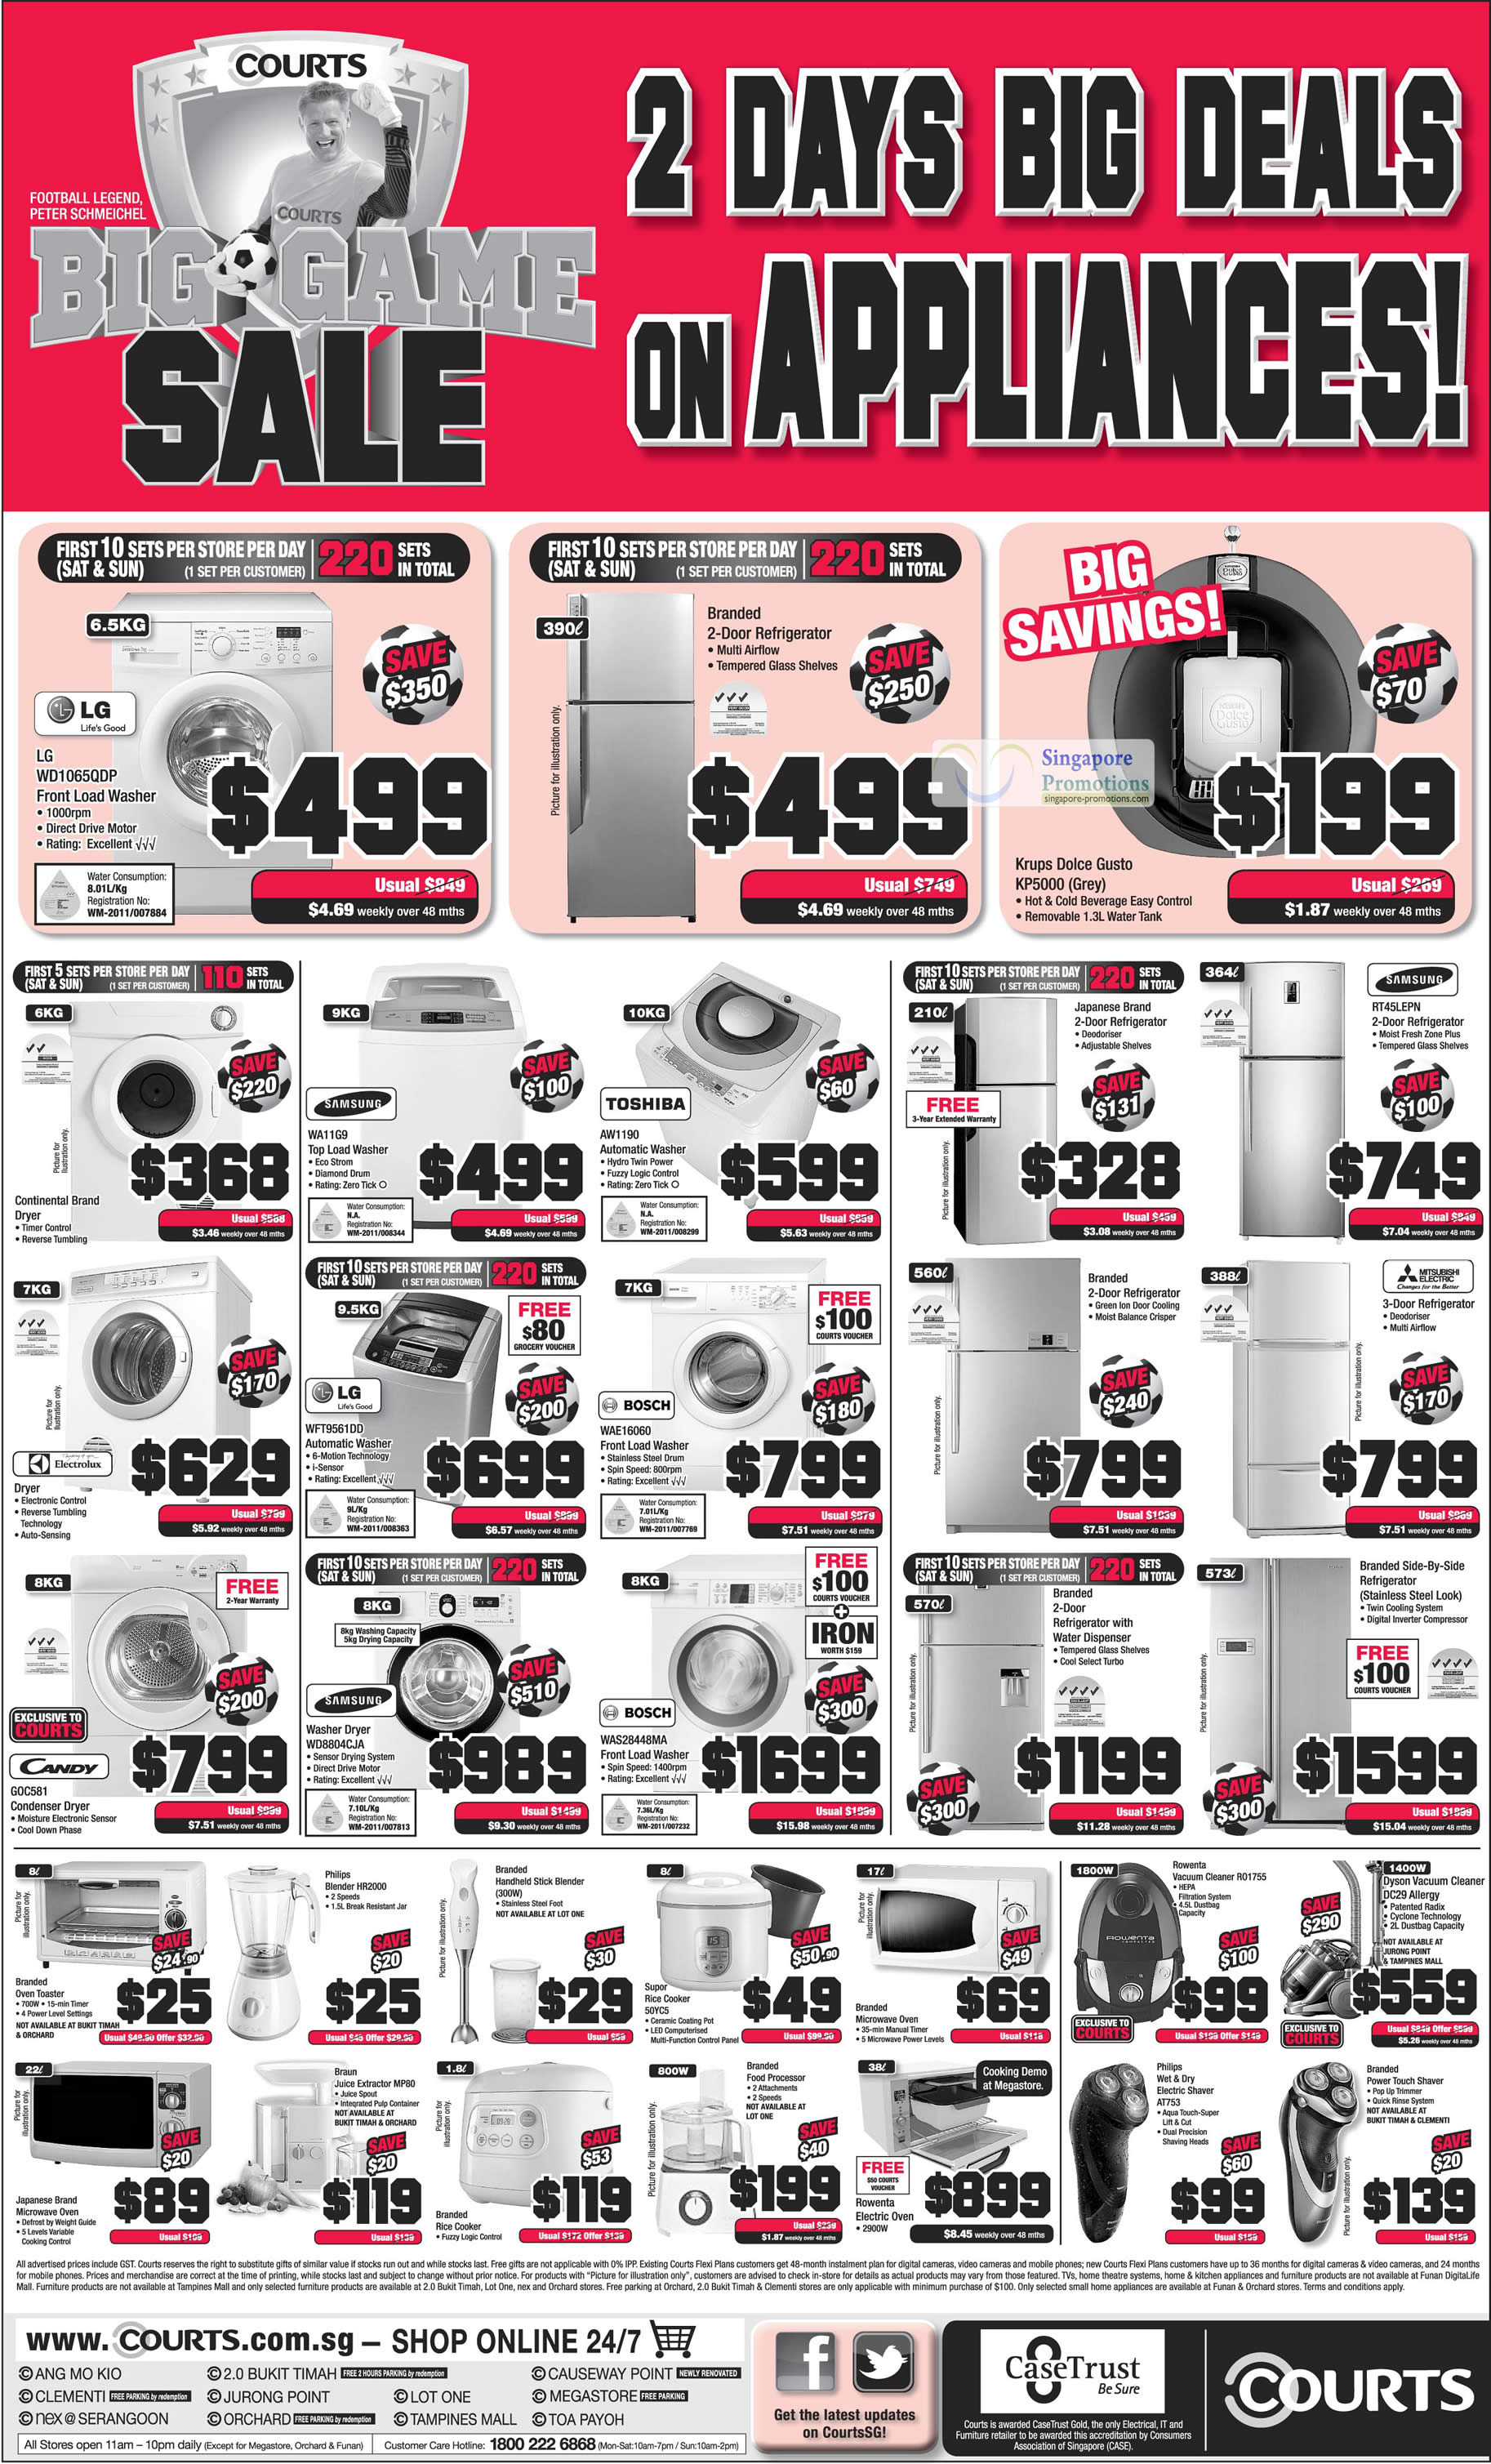 LG WD1065QDP Washer, Samsung WA11G9 Washer, LG WFT9561DD Washer, Candy GOC581 Condenser, Samsung Washer WD8804CJA, BOSCH WAS28448MA Washer, BOSCH WAE16060 Washer, TOSHIBA AW1190 Washer, Krups Dolce Gusto KP5000, Samsung RT45LEPN Fridge, Rowenta Vacuum Cleaner R01755, Dyson Vacuum Cleaner DC29, Philips Electric Shaver AT753, Supor Rice Cooker 50YC5, Philips Blender HR2000, Braun Juice Extractor MP80